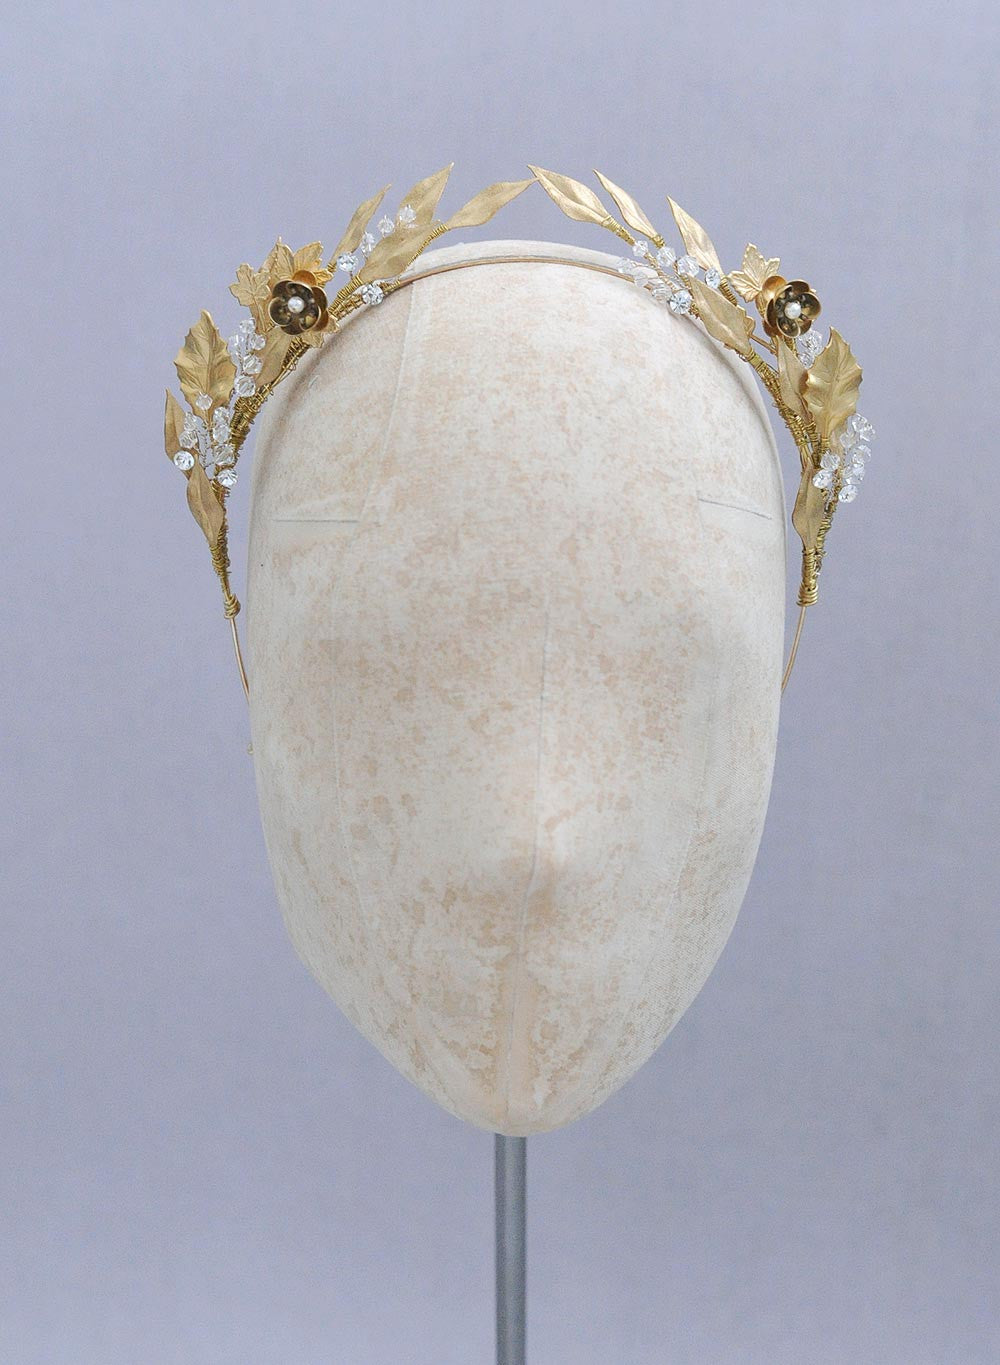 Symmetrical ornate gilded headband - Style #652